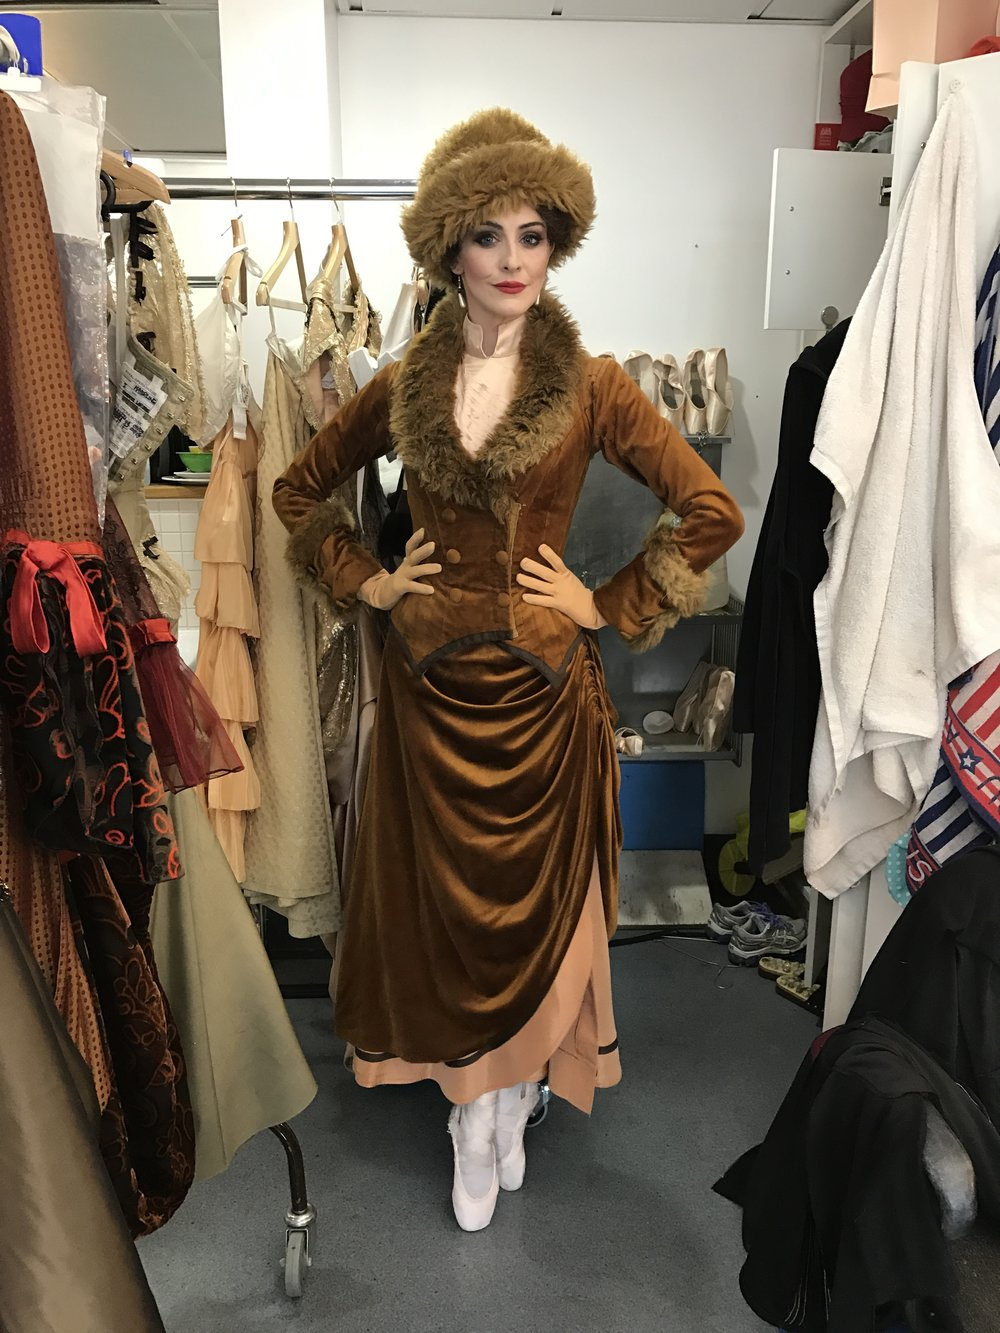 ACT THREE, SNOW SCENE. LOVE LOVE LOVE THIS OUTFIT! IT DOES GET QUITE HOT IN THERE AND IS VERY HEAVY BUT IT'S ALL WORTH IT FOR THIS GLAMOUR!